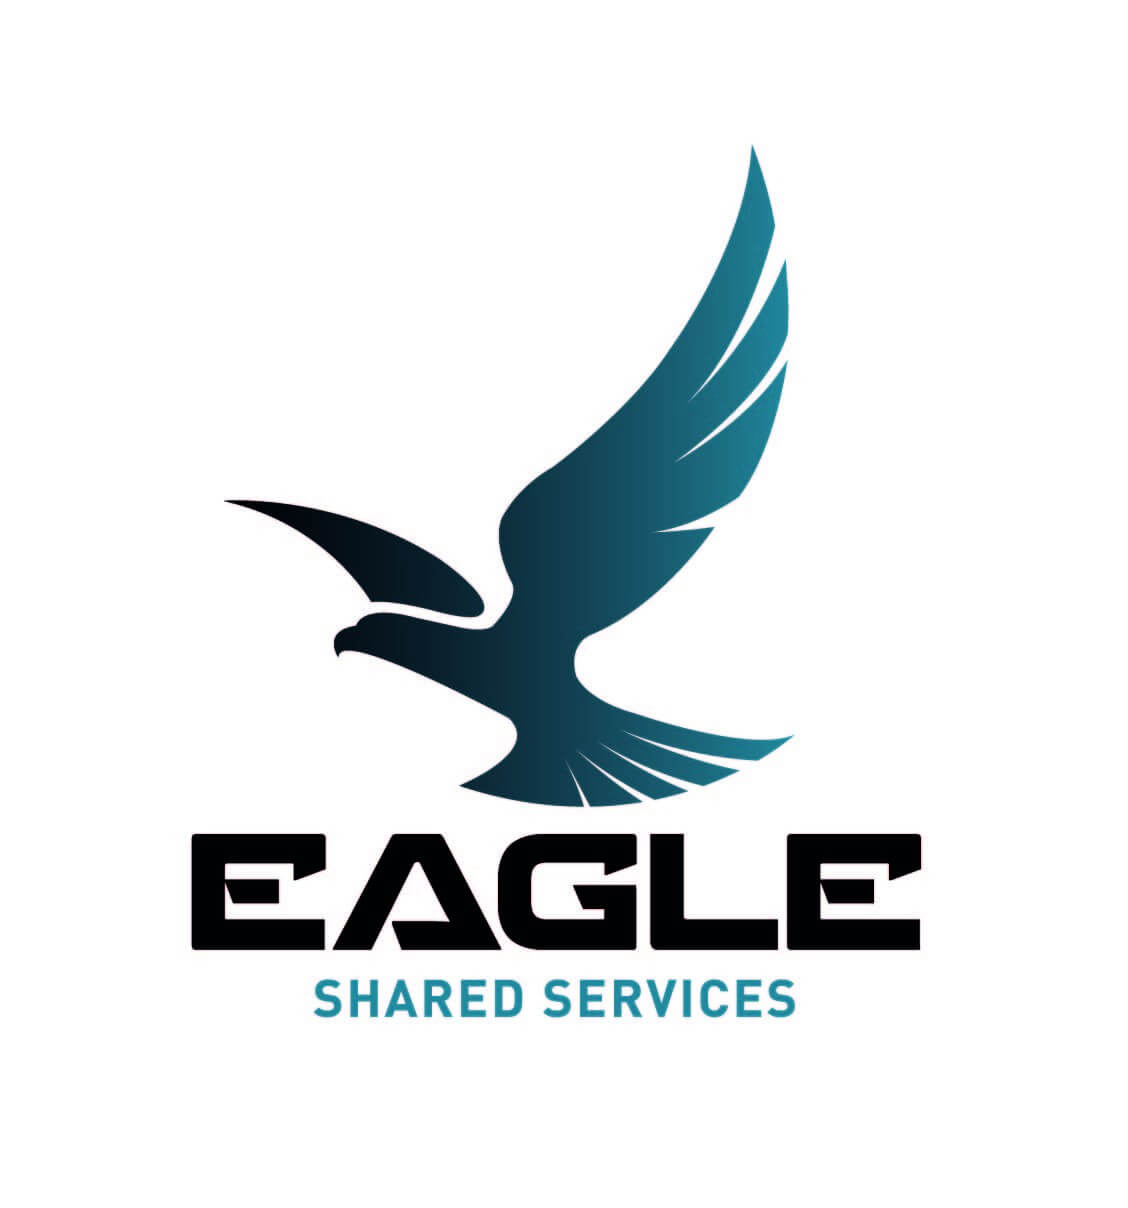 Eagle Shared Services Pty. Ltd.